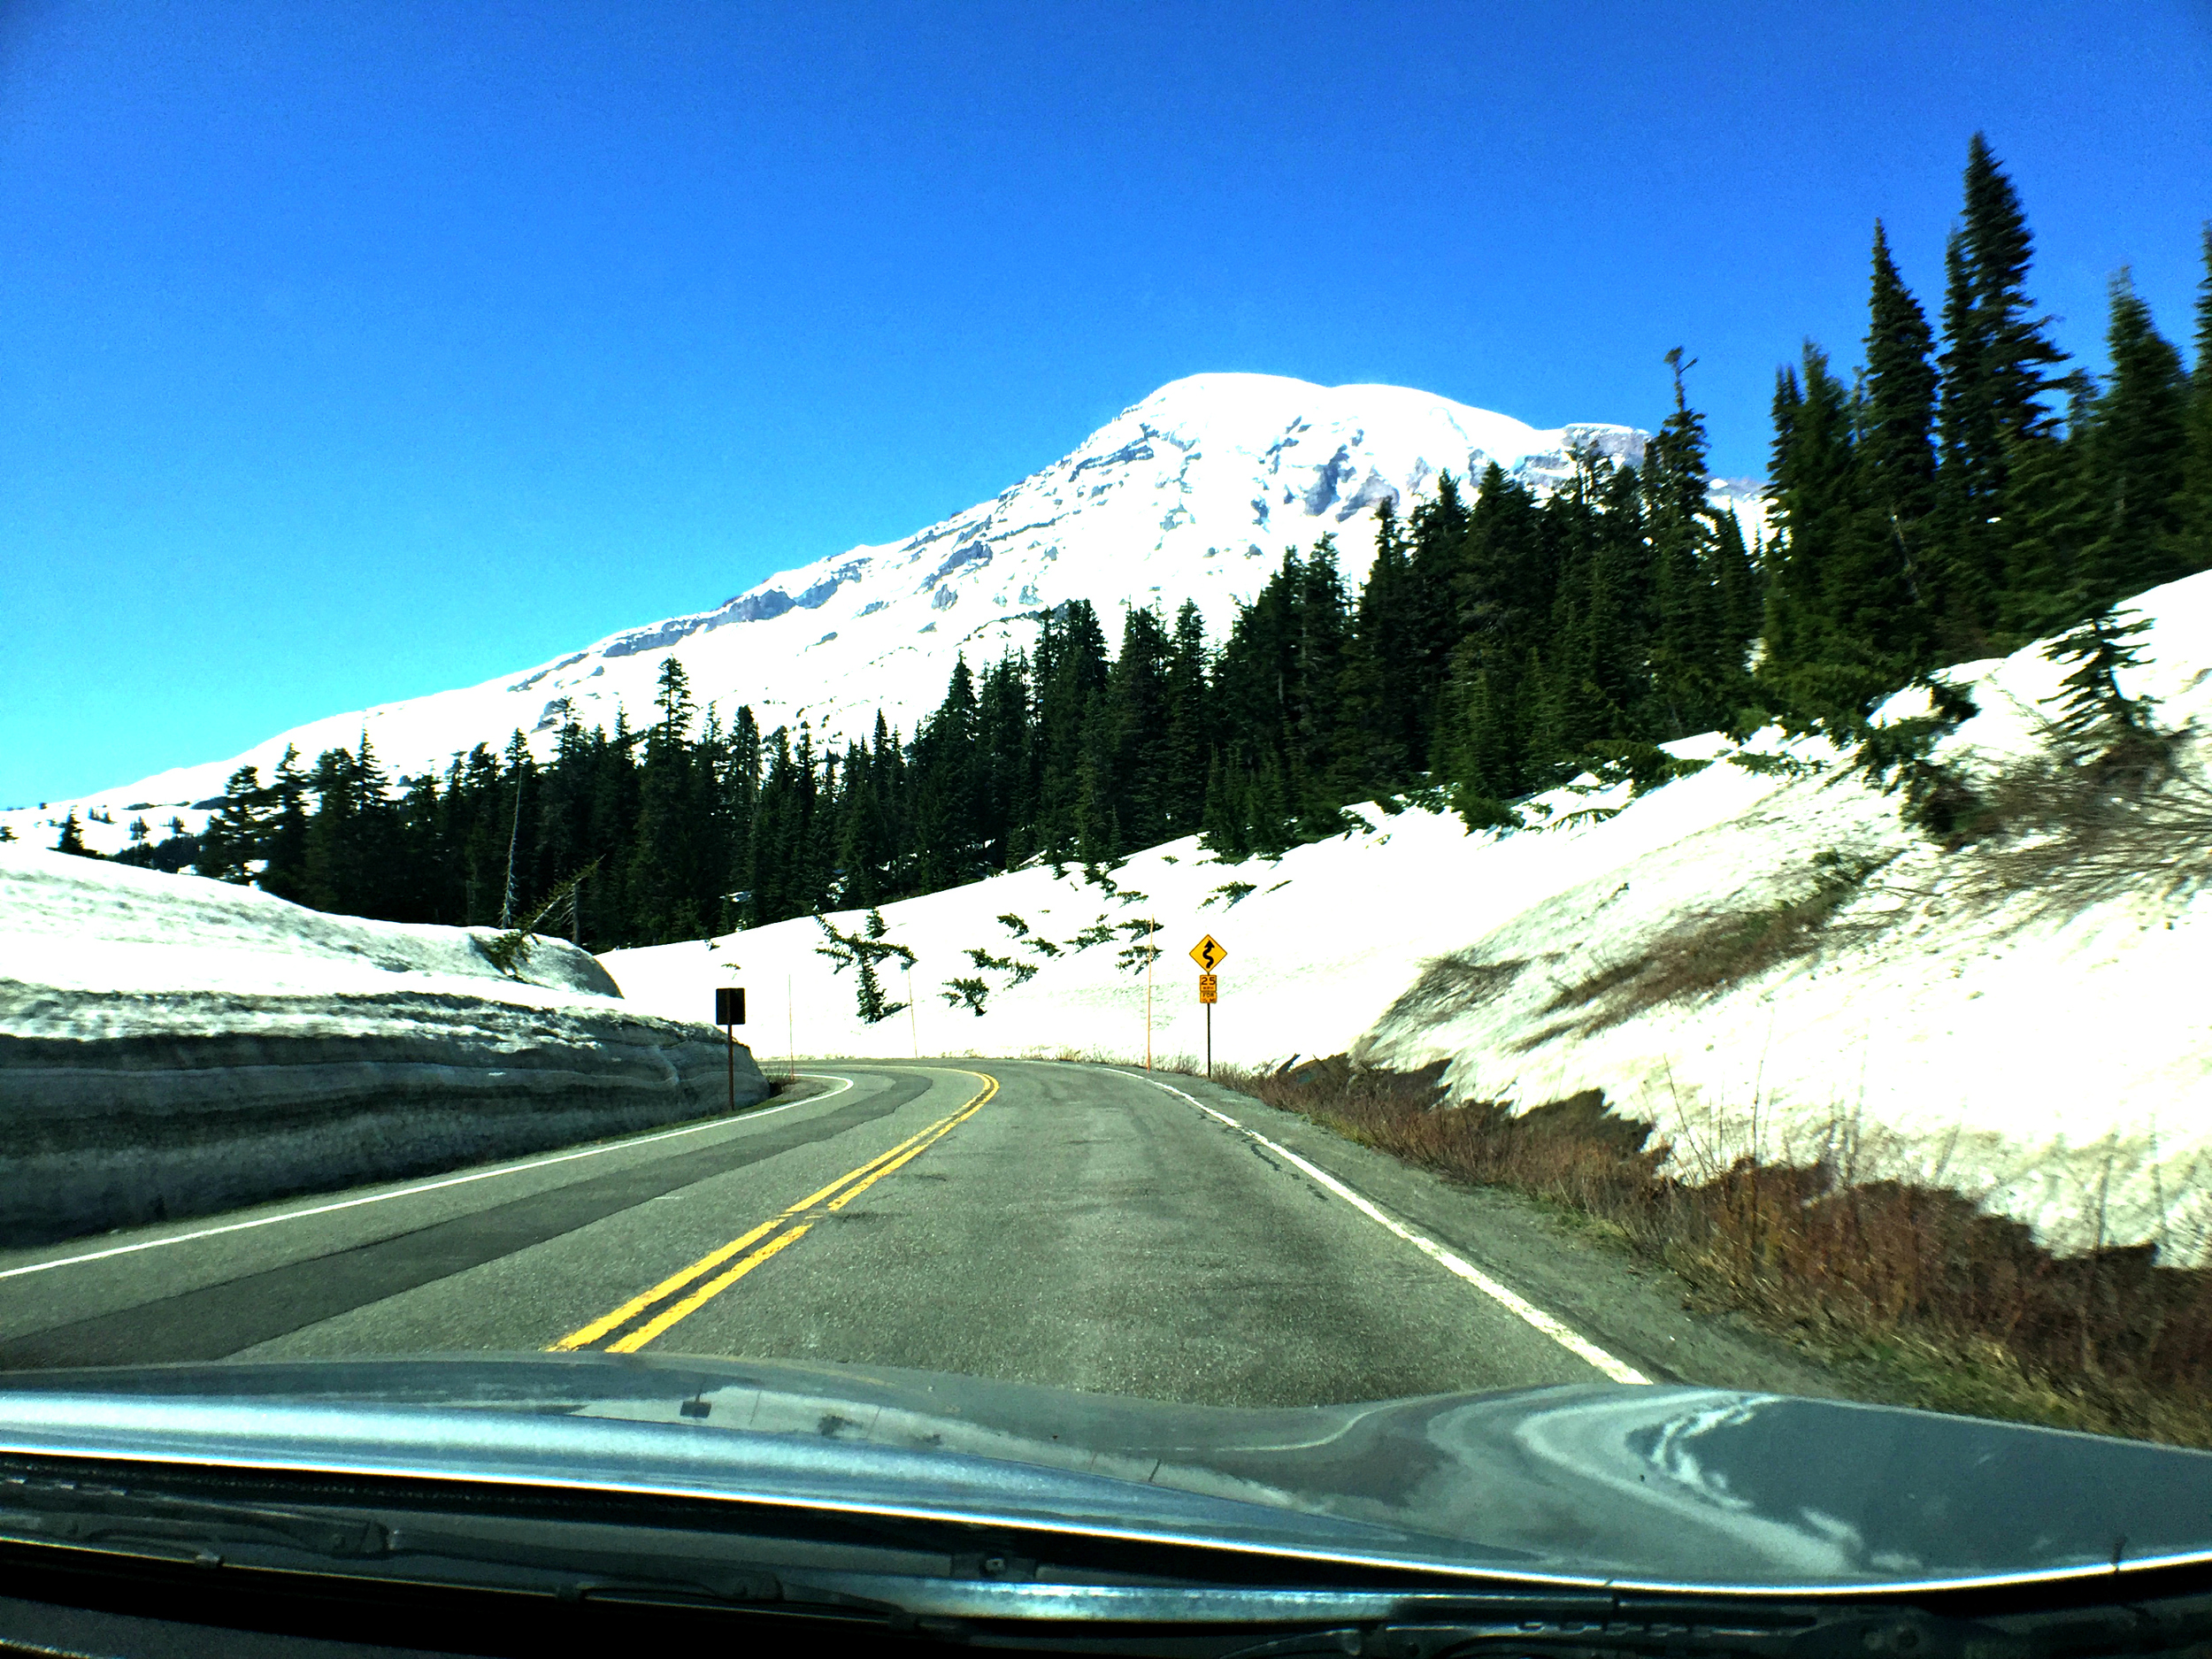 Nearing the top of Mount Rainier. Despite all the snow, it wasn't cold at all and I actually had on shorts. So crazy!